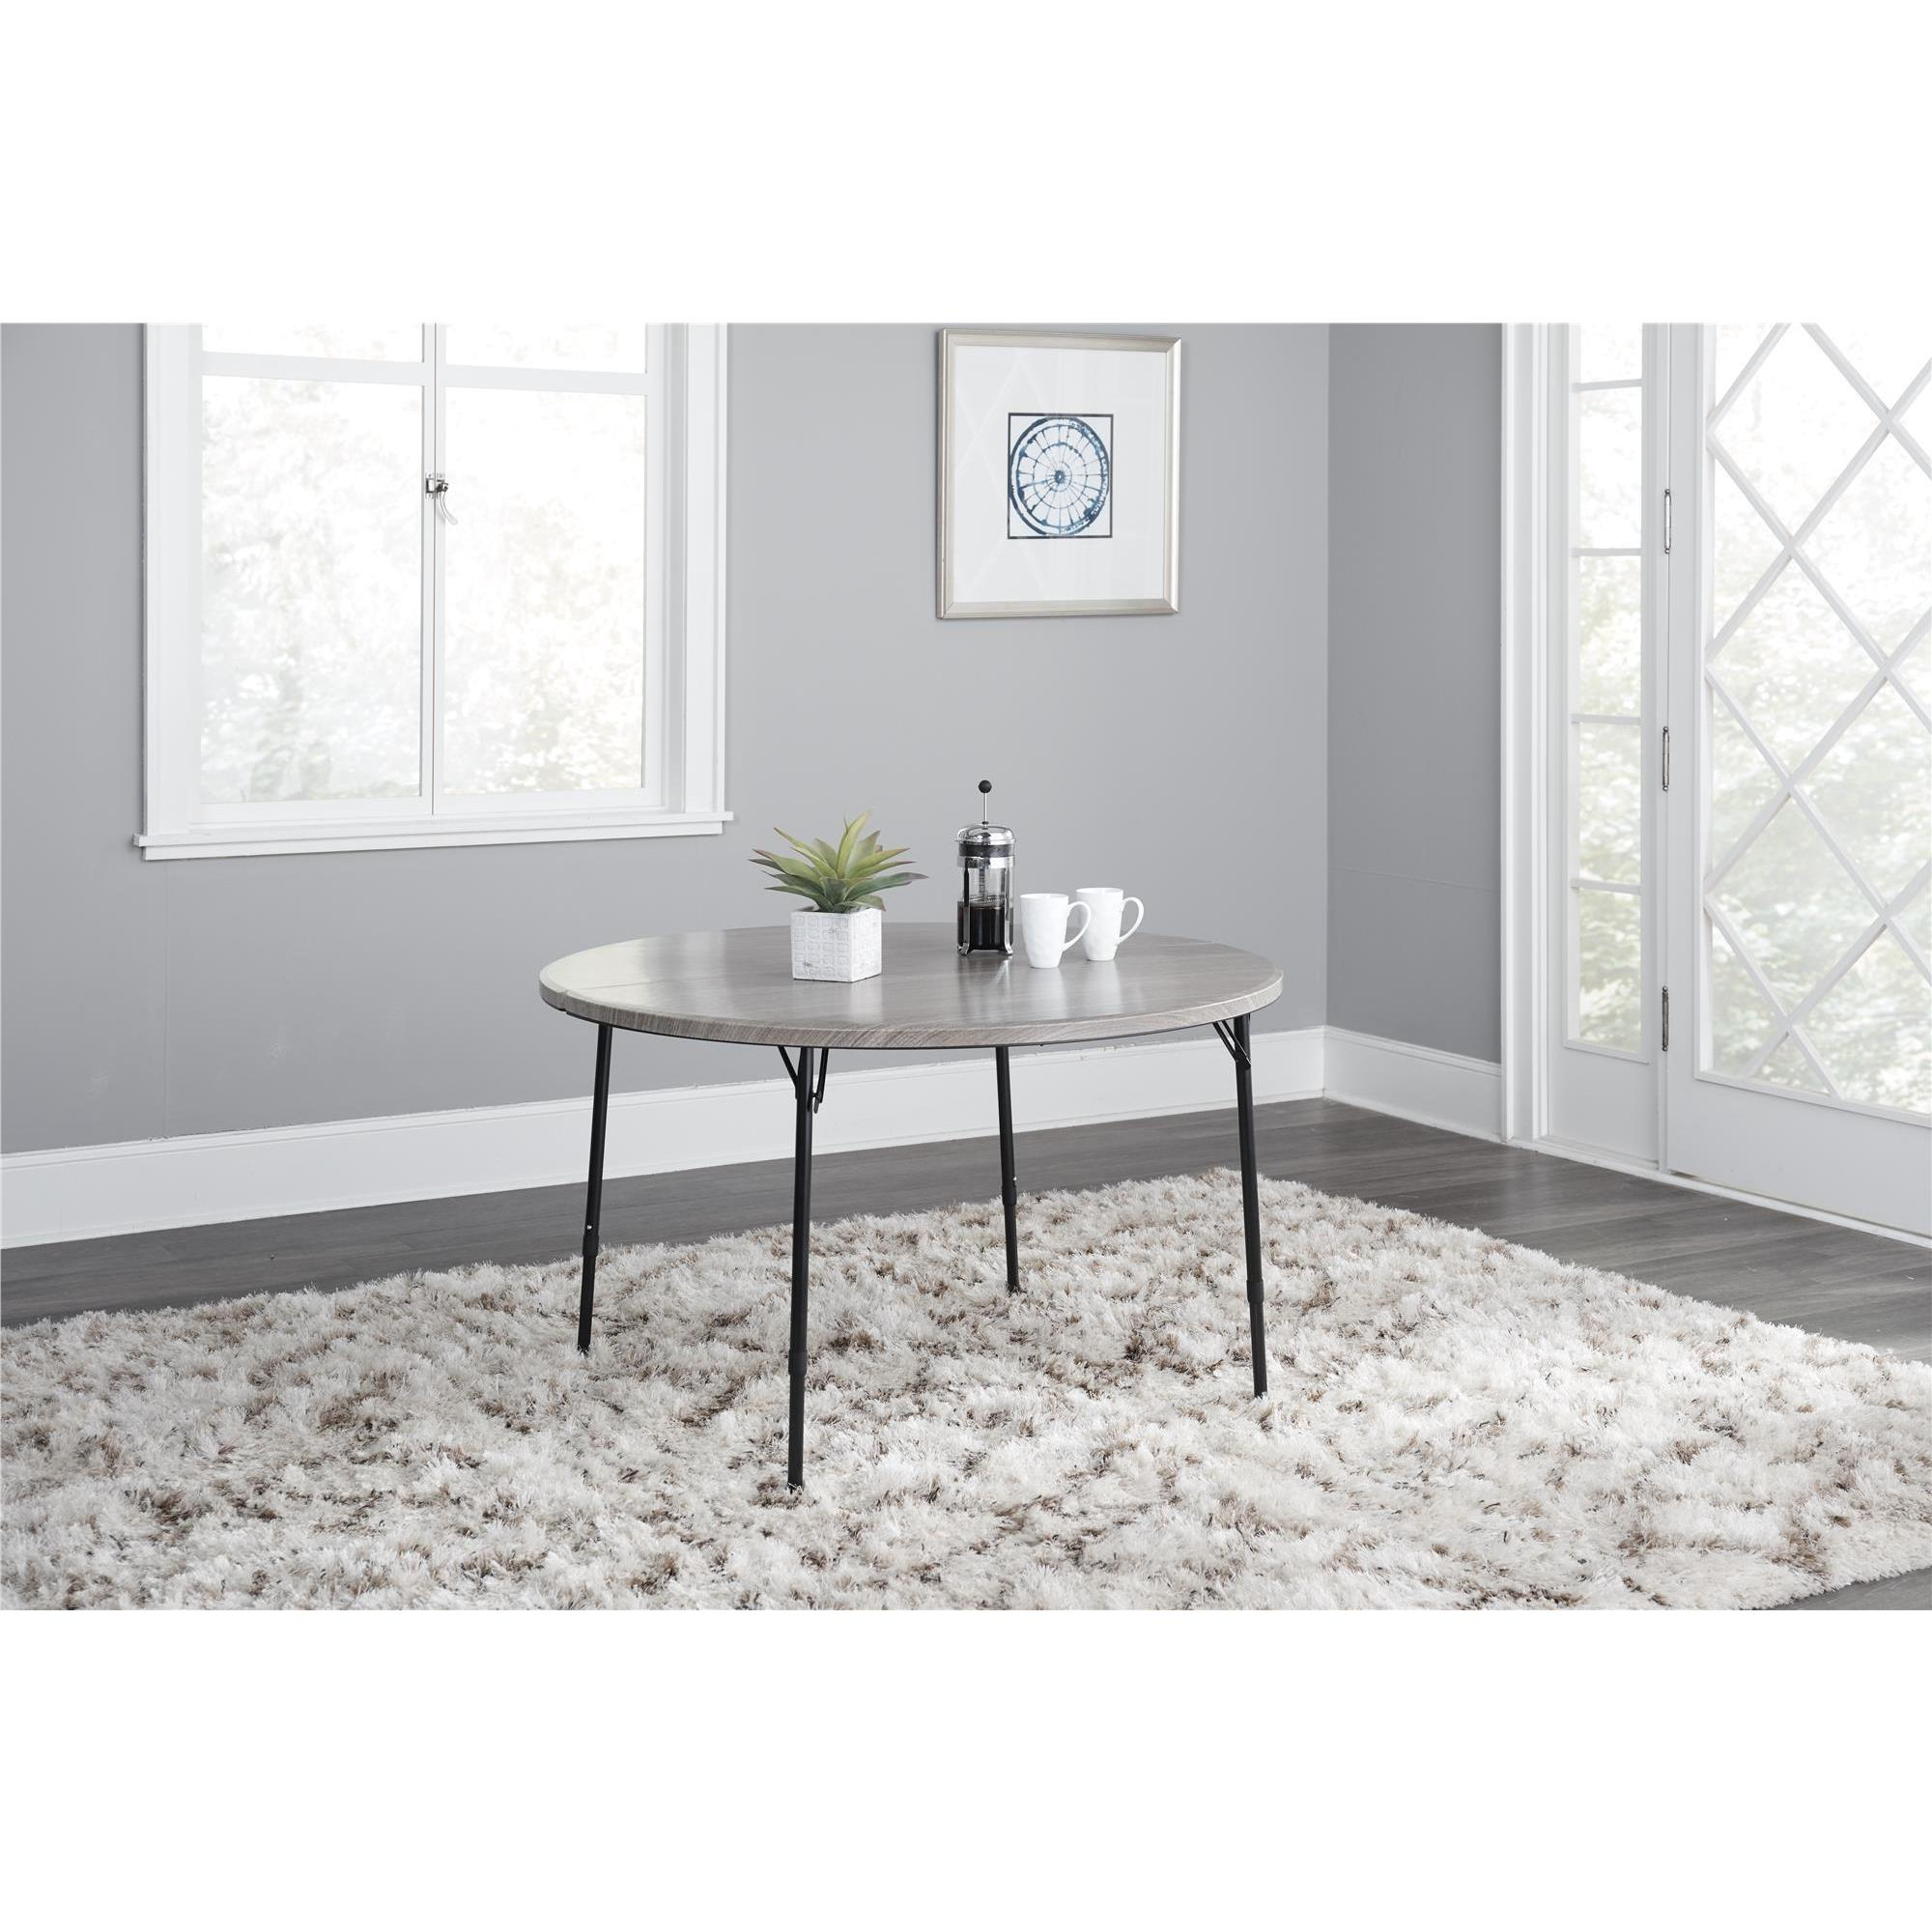 COSCO Grey 48 Inch Round Fold In Half Table   Free Shipping Today    Overstock.com   24284738